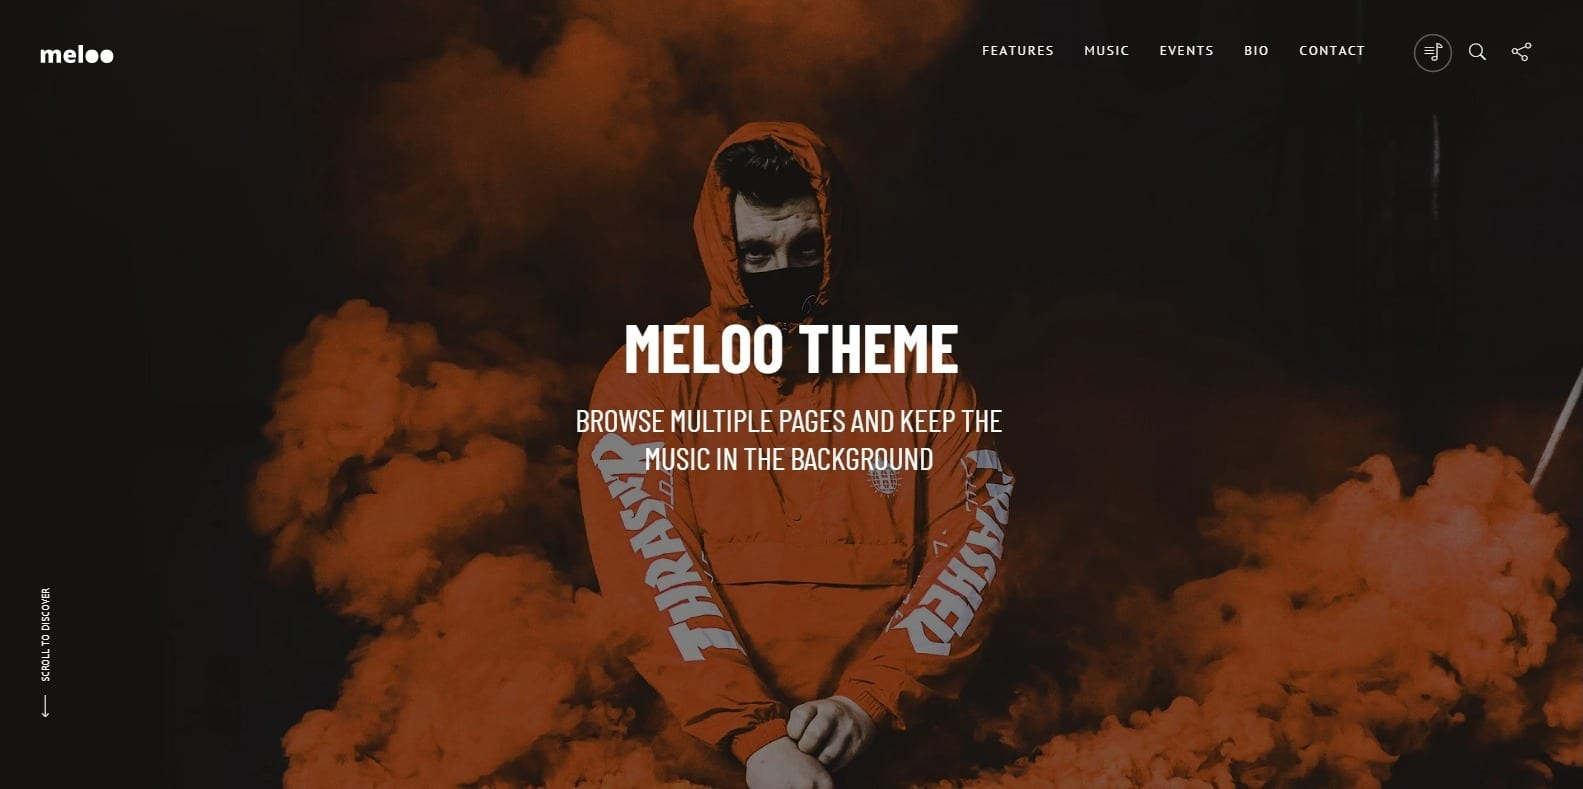 meloo-html-music-website-template